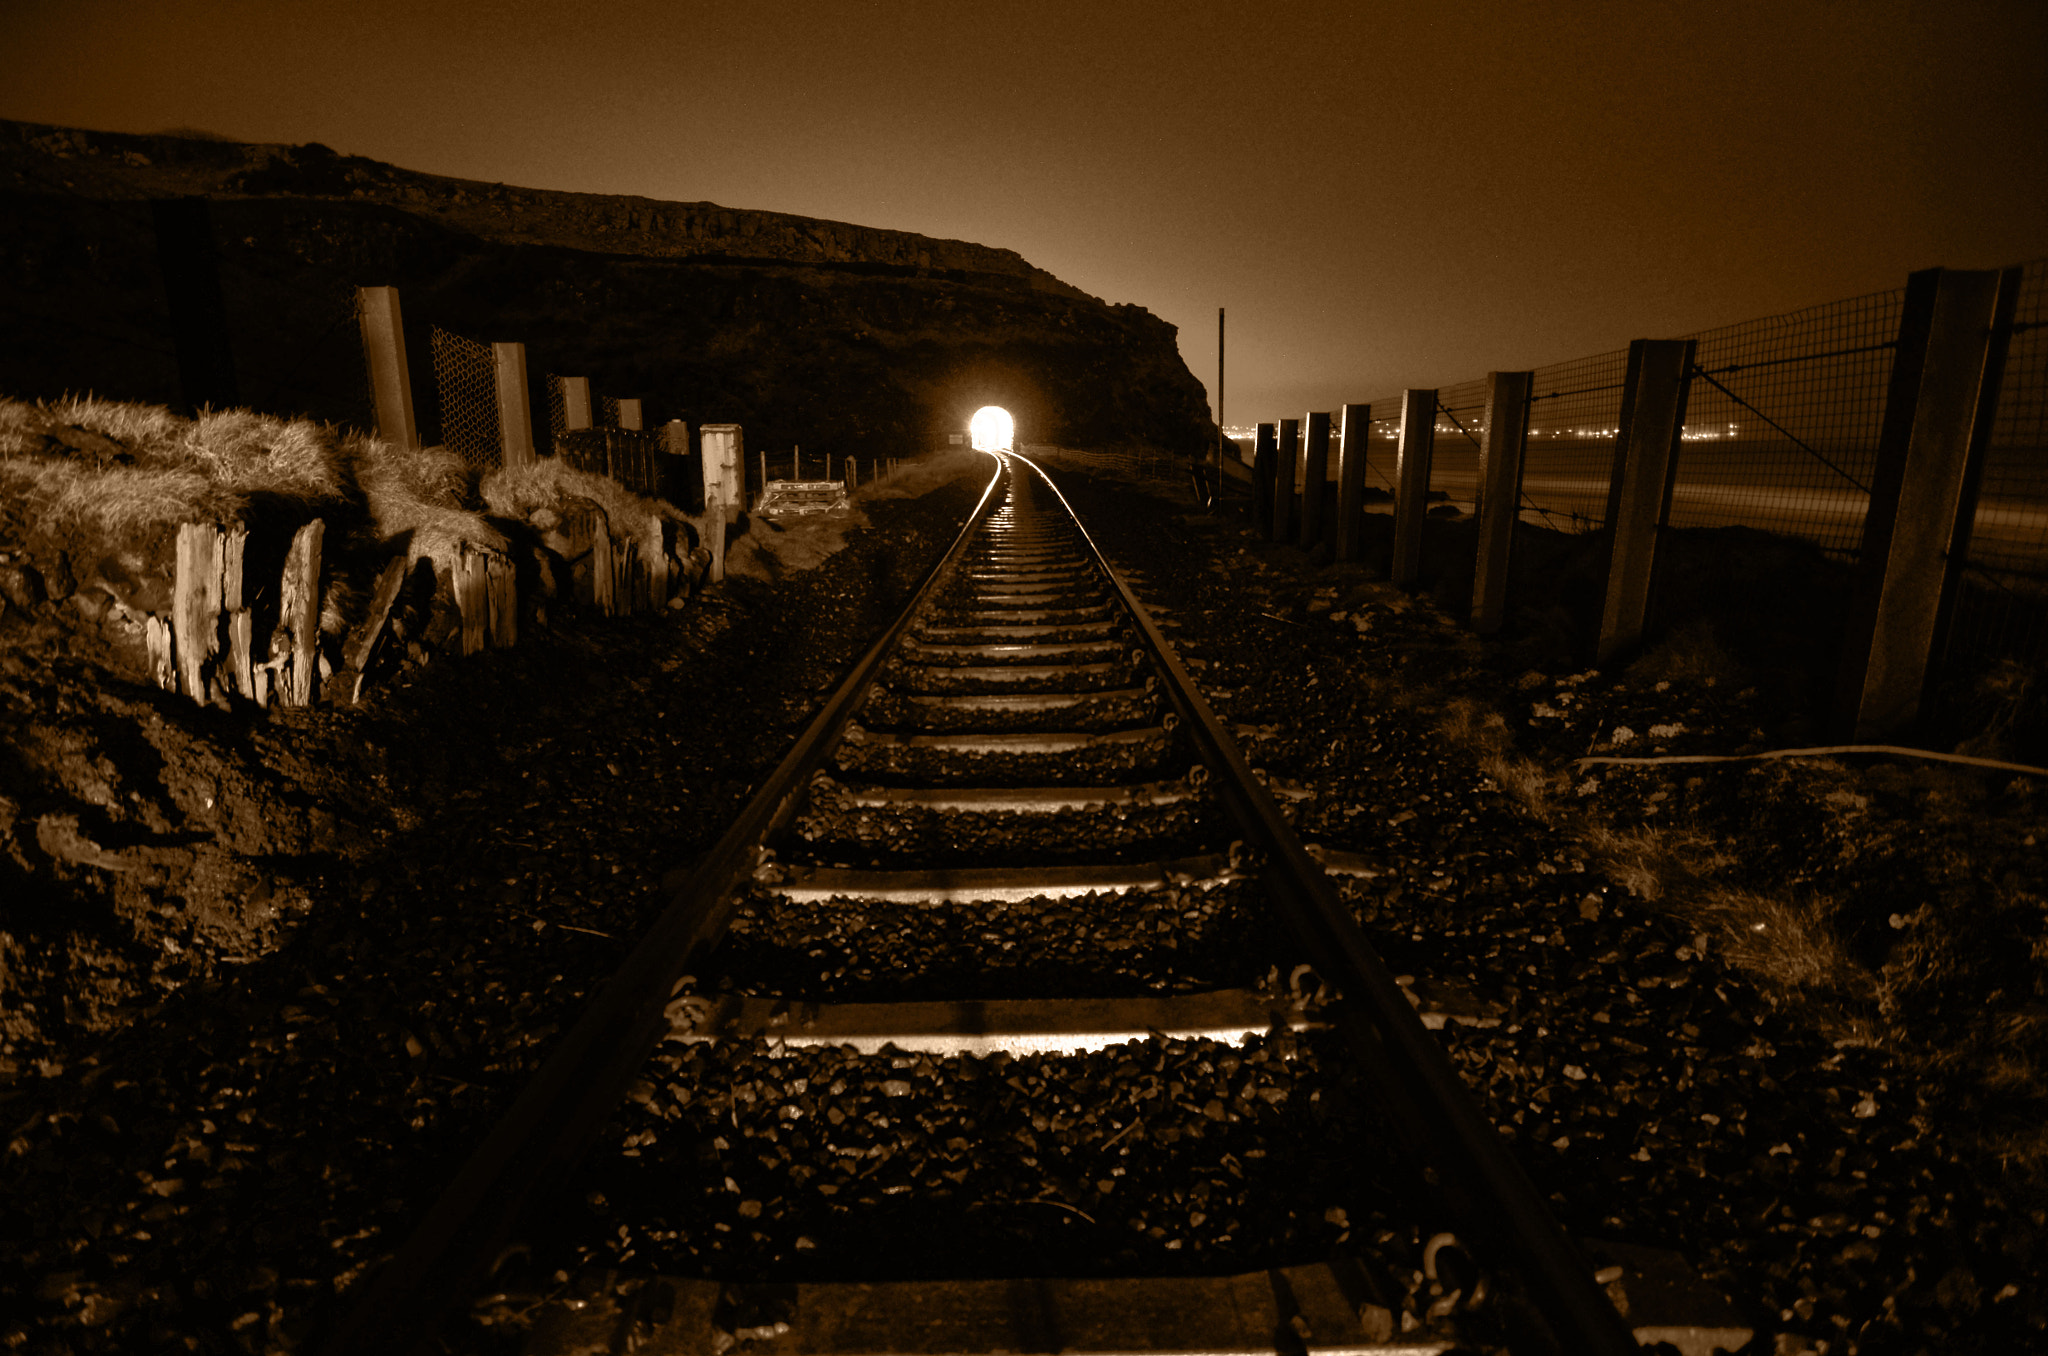 Photograph LIGHT AT THE END OF THE TUNNEL? by Owen Anderson on 500px